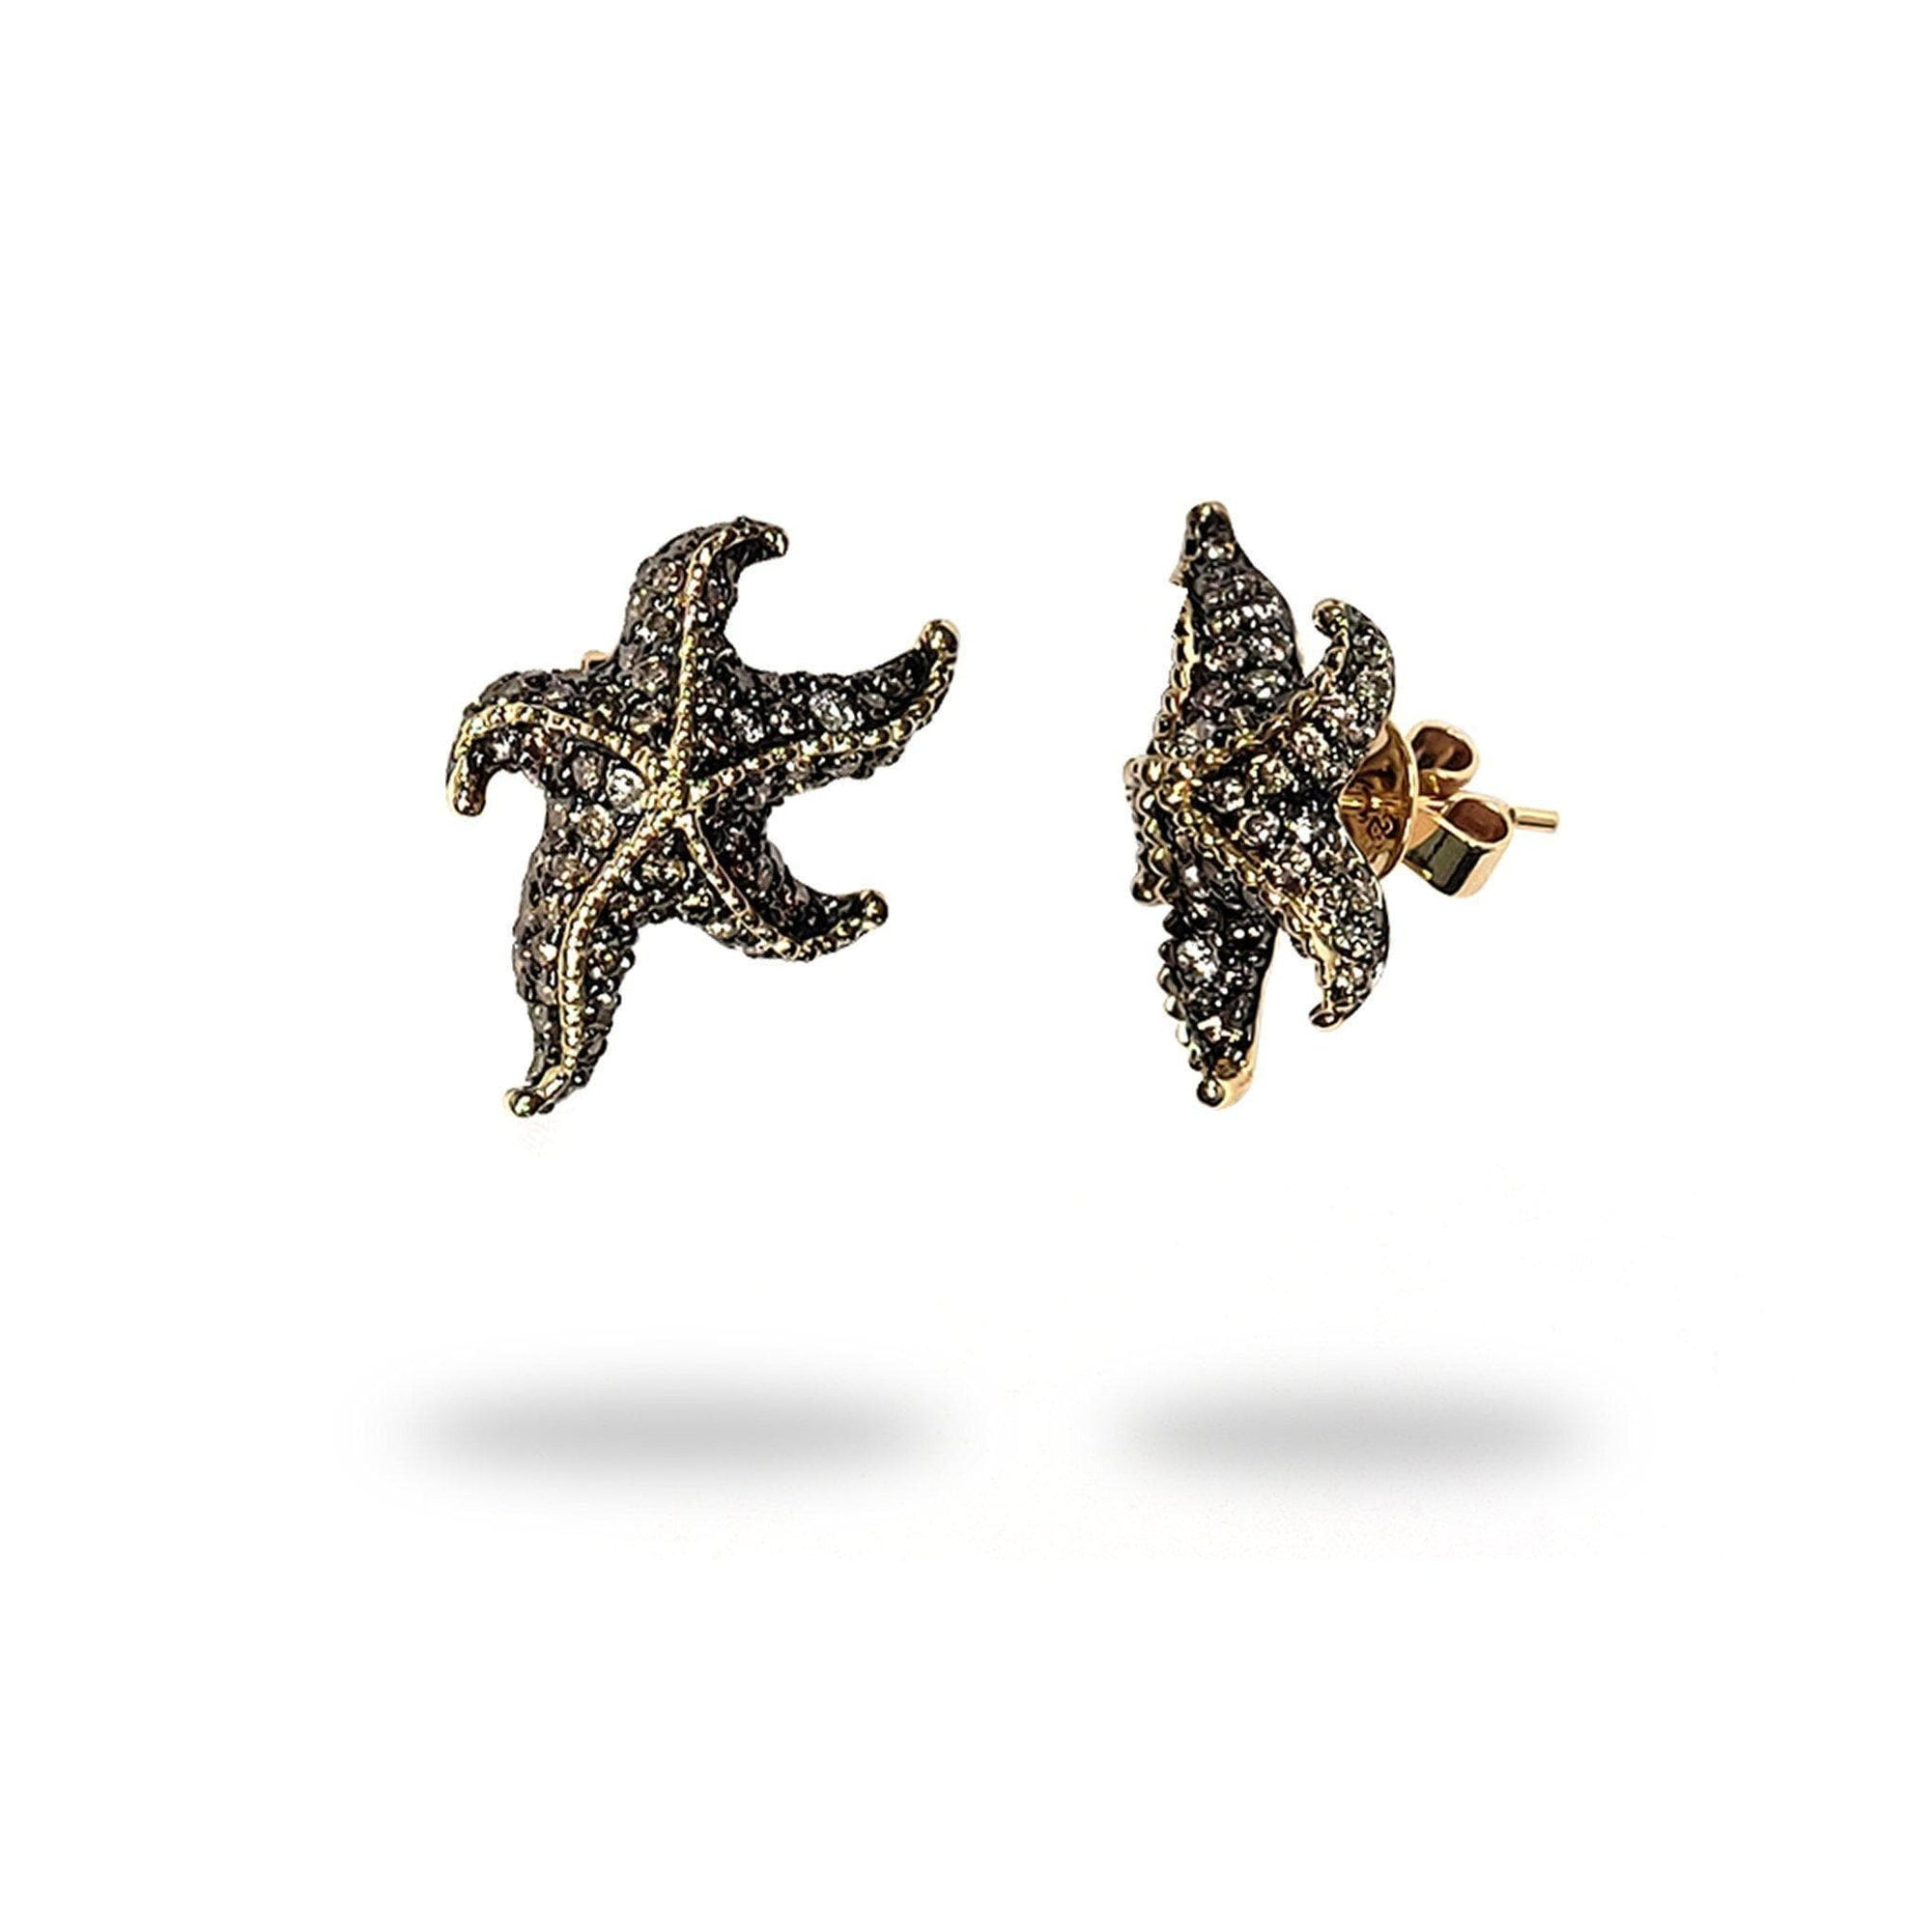 Starfish Stud Earrings with Diamonds in 14K Yellow Gold - Maui Divers Jewelry